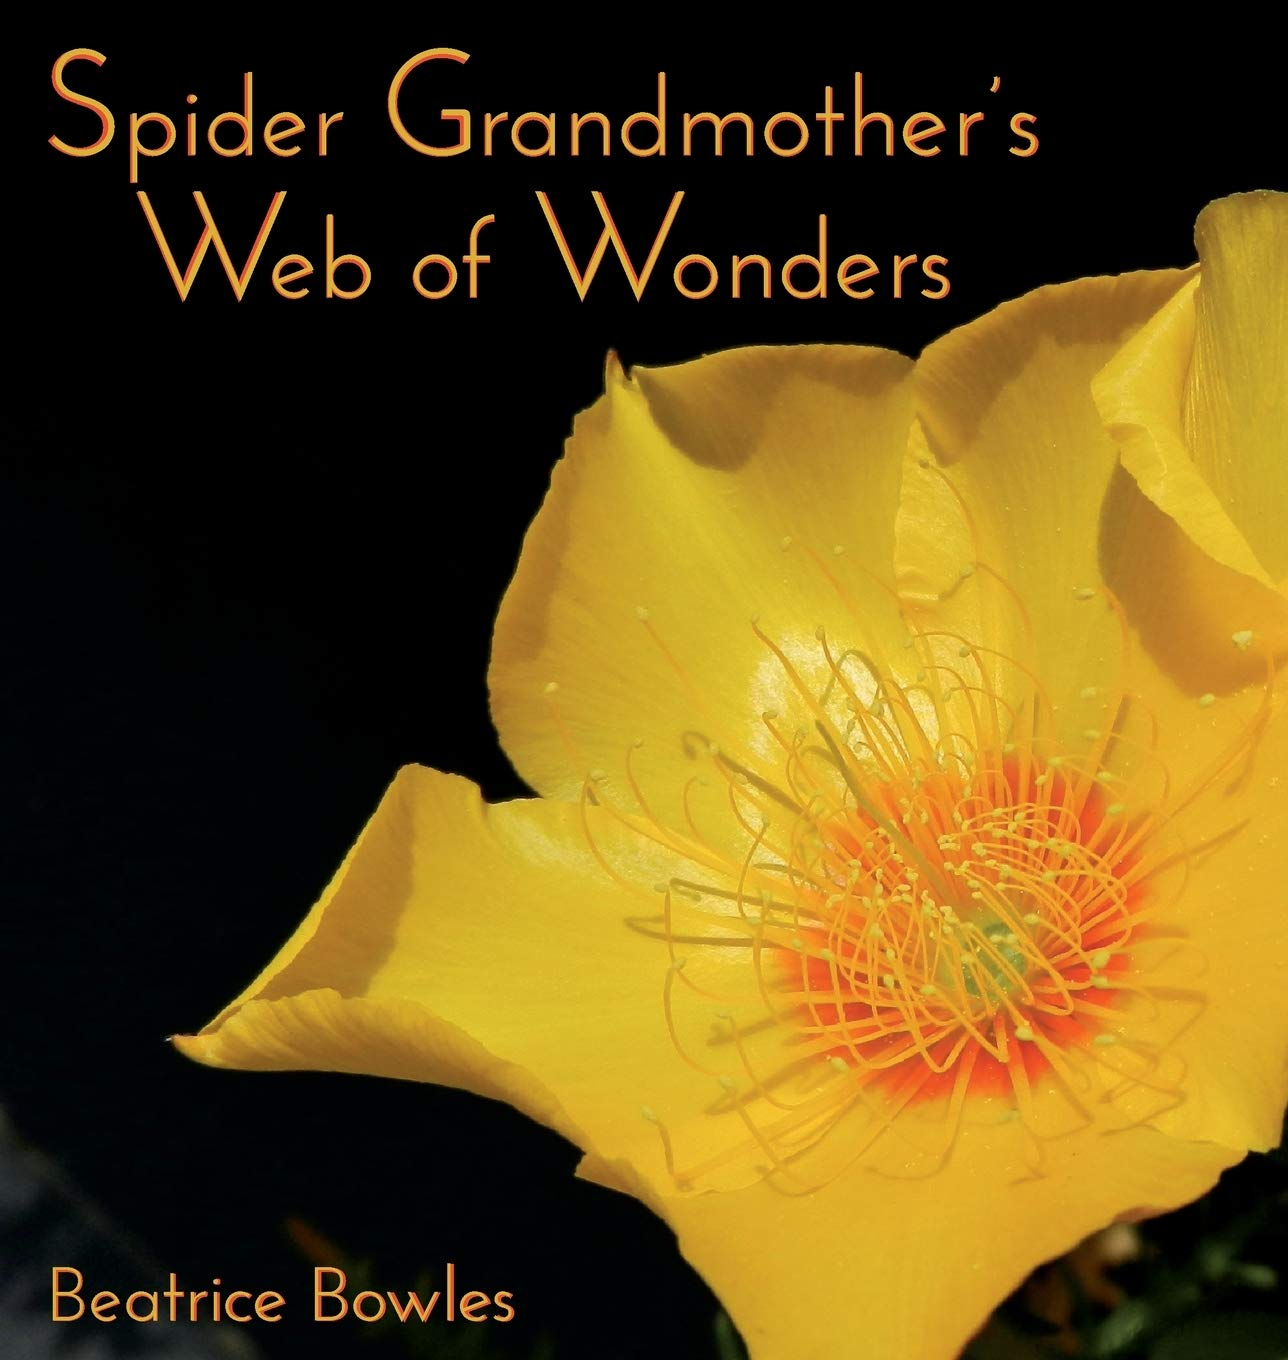 Spider Grandmother's Web of Wonders